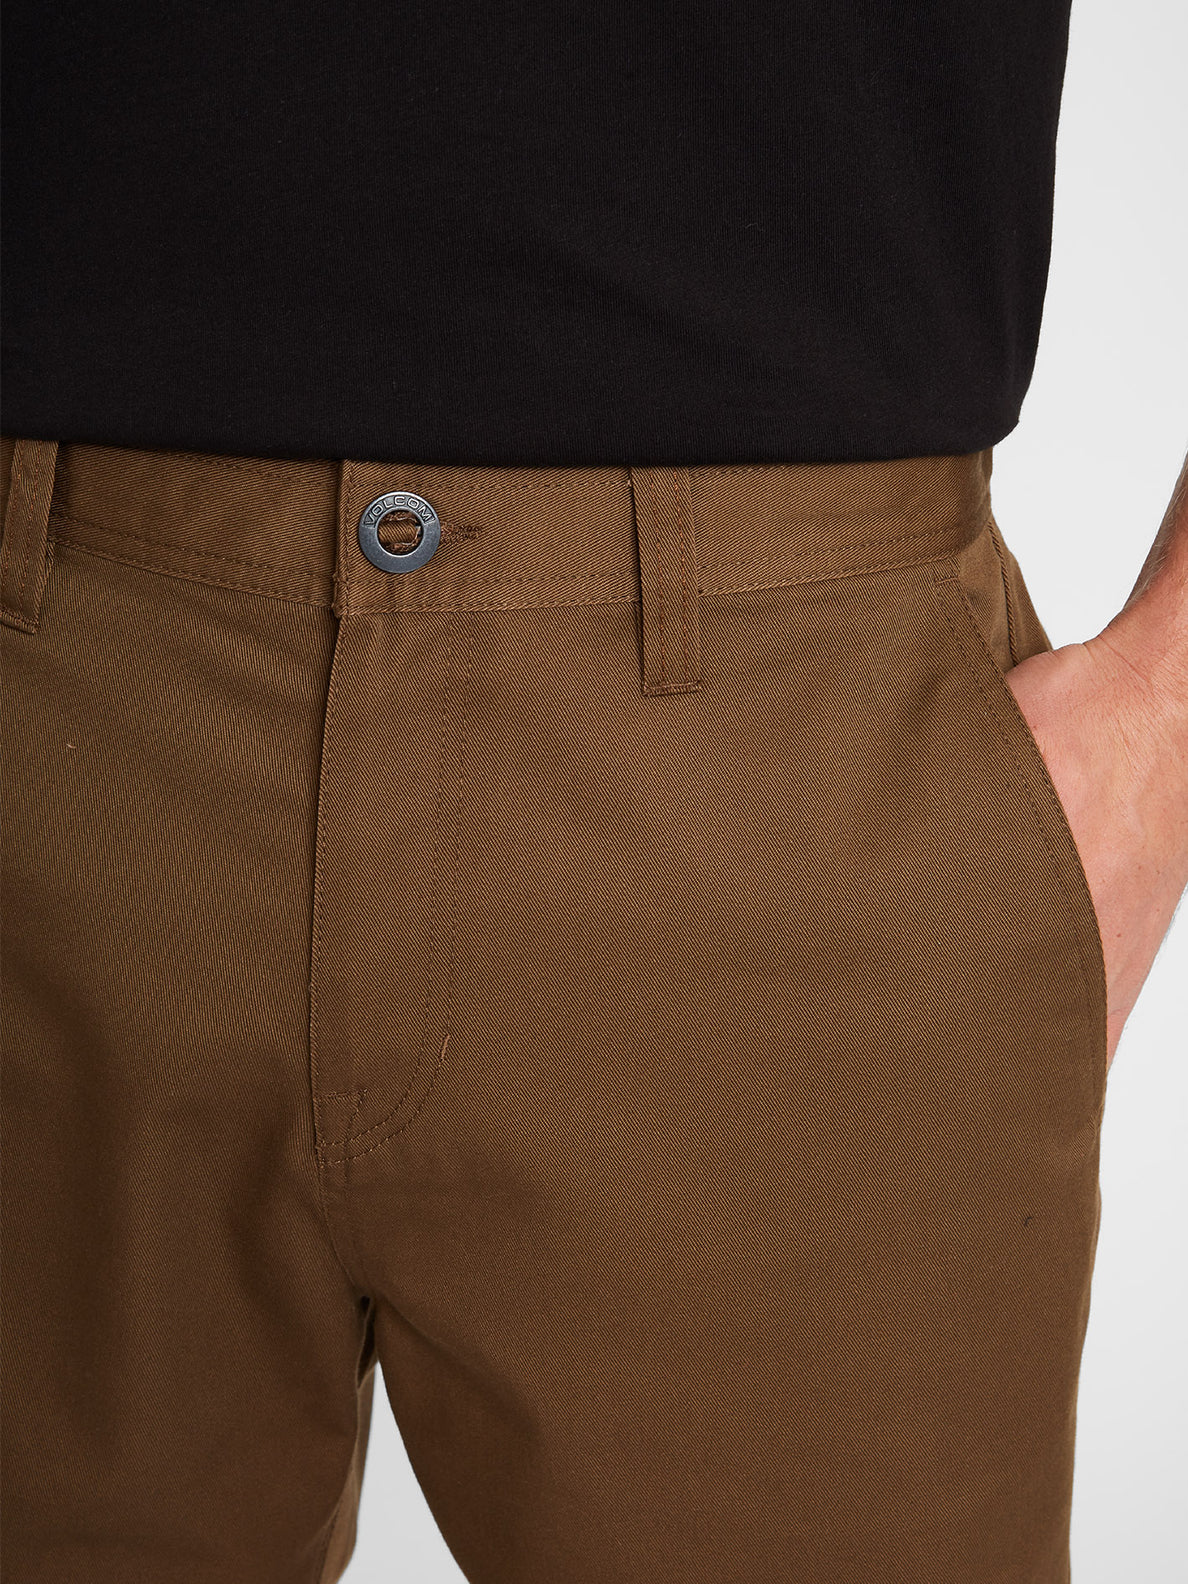 Substance Chino Pant - Vintage Brown (A1112104_VBN) [5]